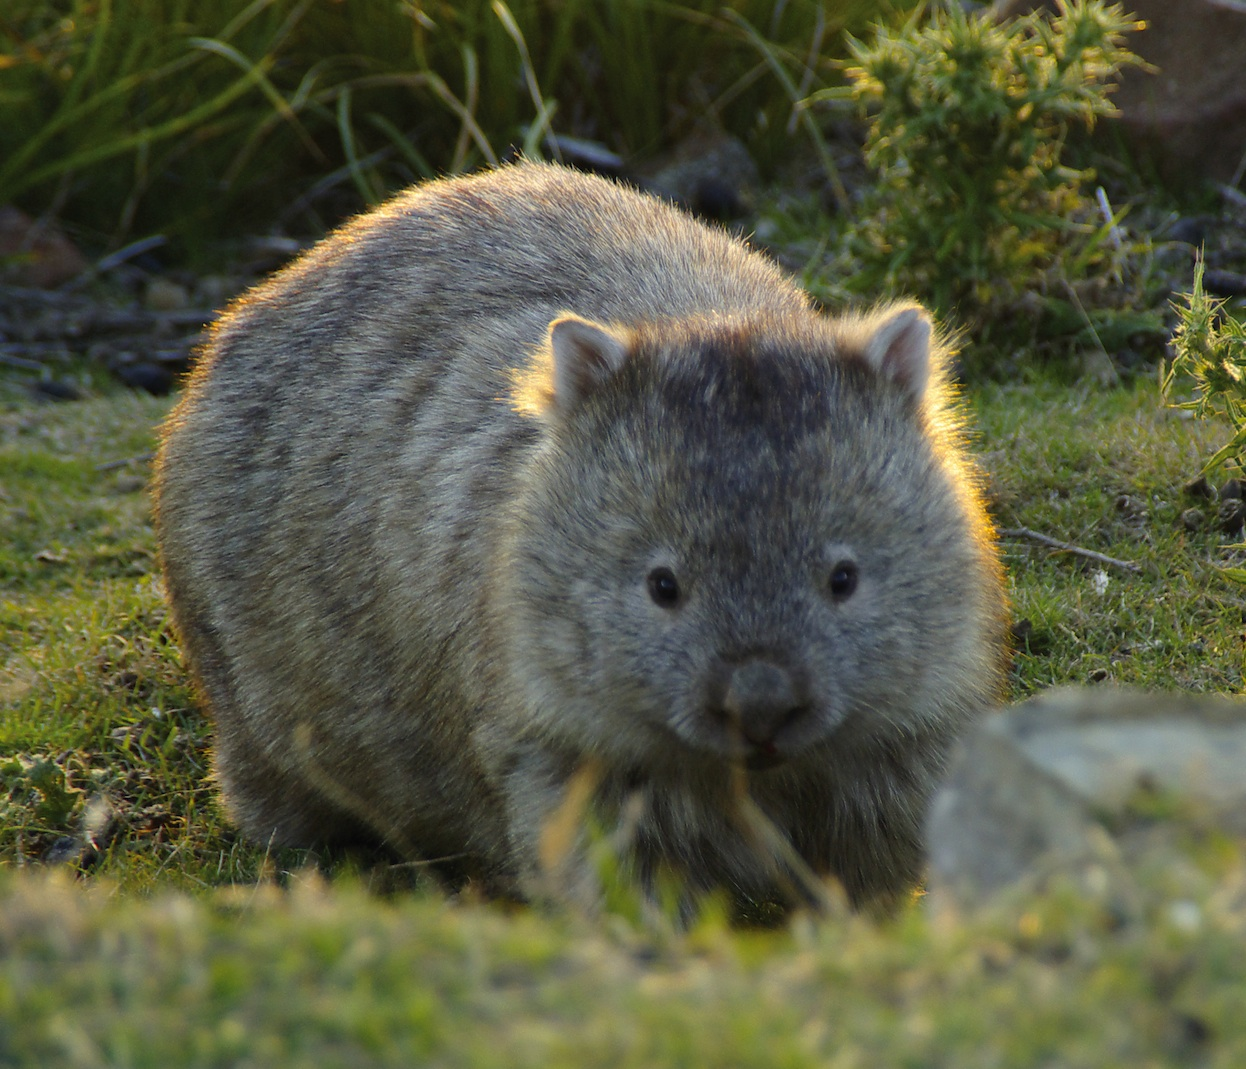 wombats Do wombats live in family groups no, bare-nosed wombats (the common wombat) are solitary and don't like to share their burrows they will tolerate other wombats to a point but unlike their cousins, the southern hairy-nosed wombat, bare-nosed wombats prefer their own space and burrow.